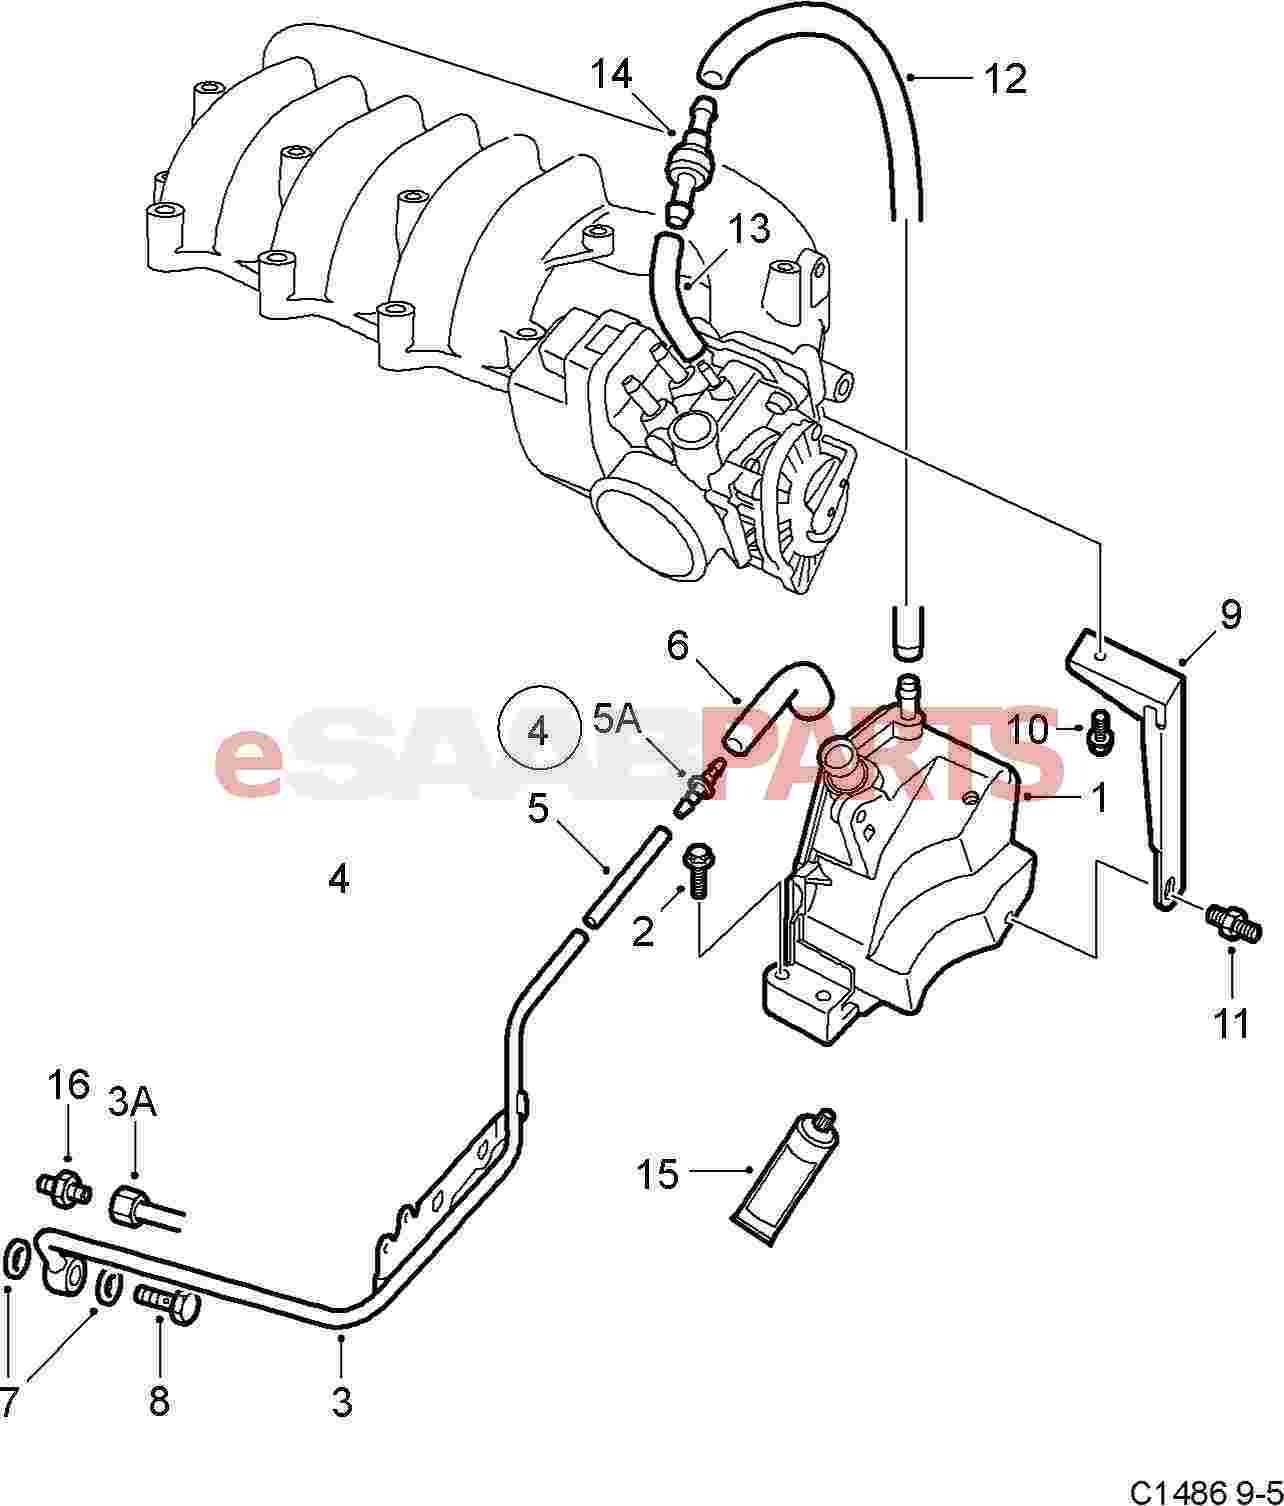 hight resolution of 2000 saab 9 5 pcv diagram diagram data schema 2000 saab 9 5 pcv diagram